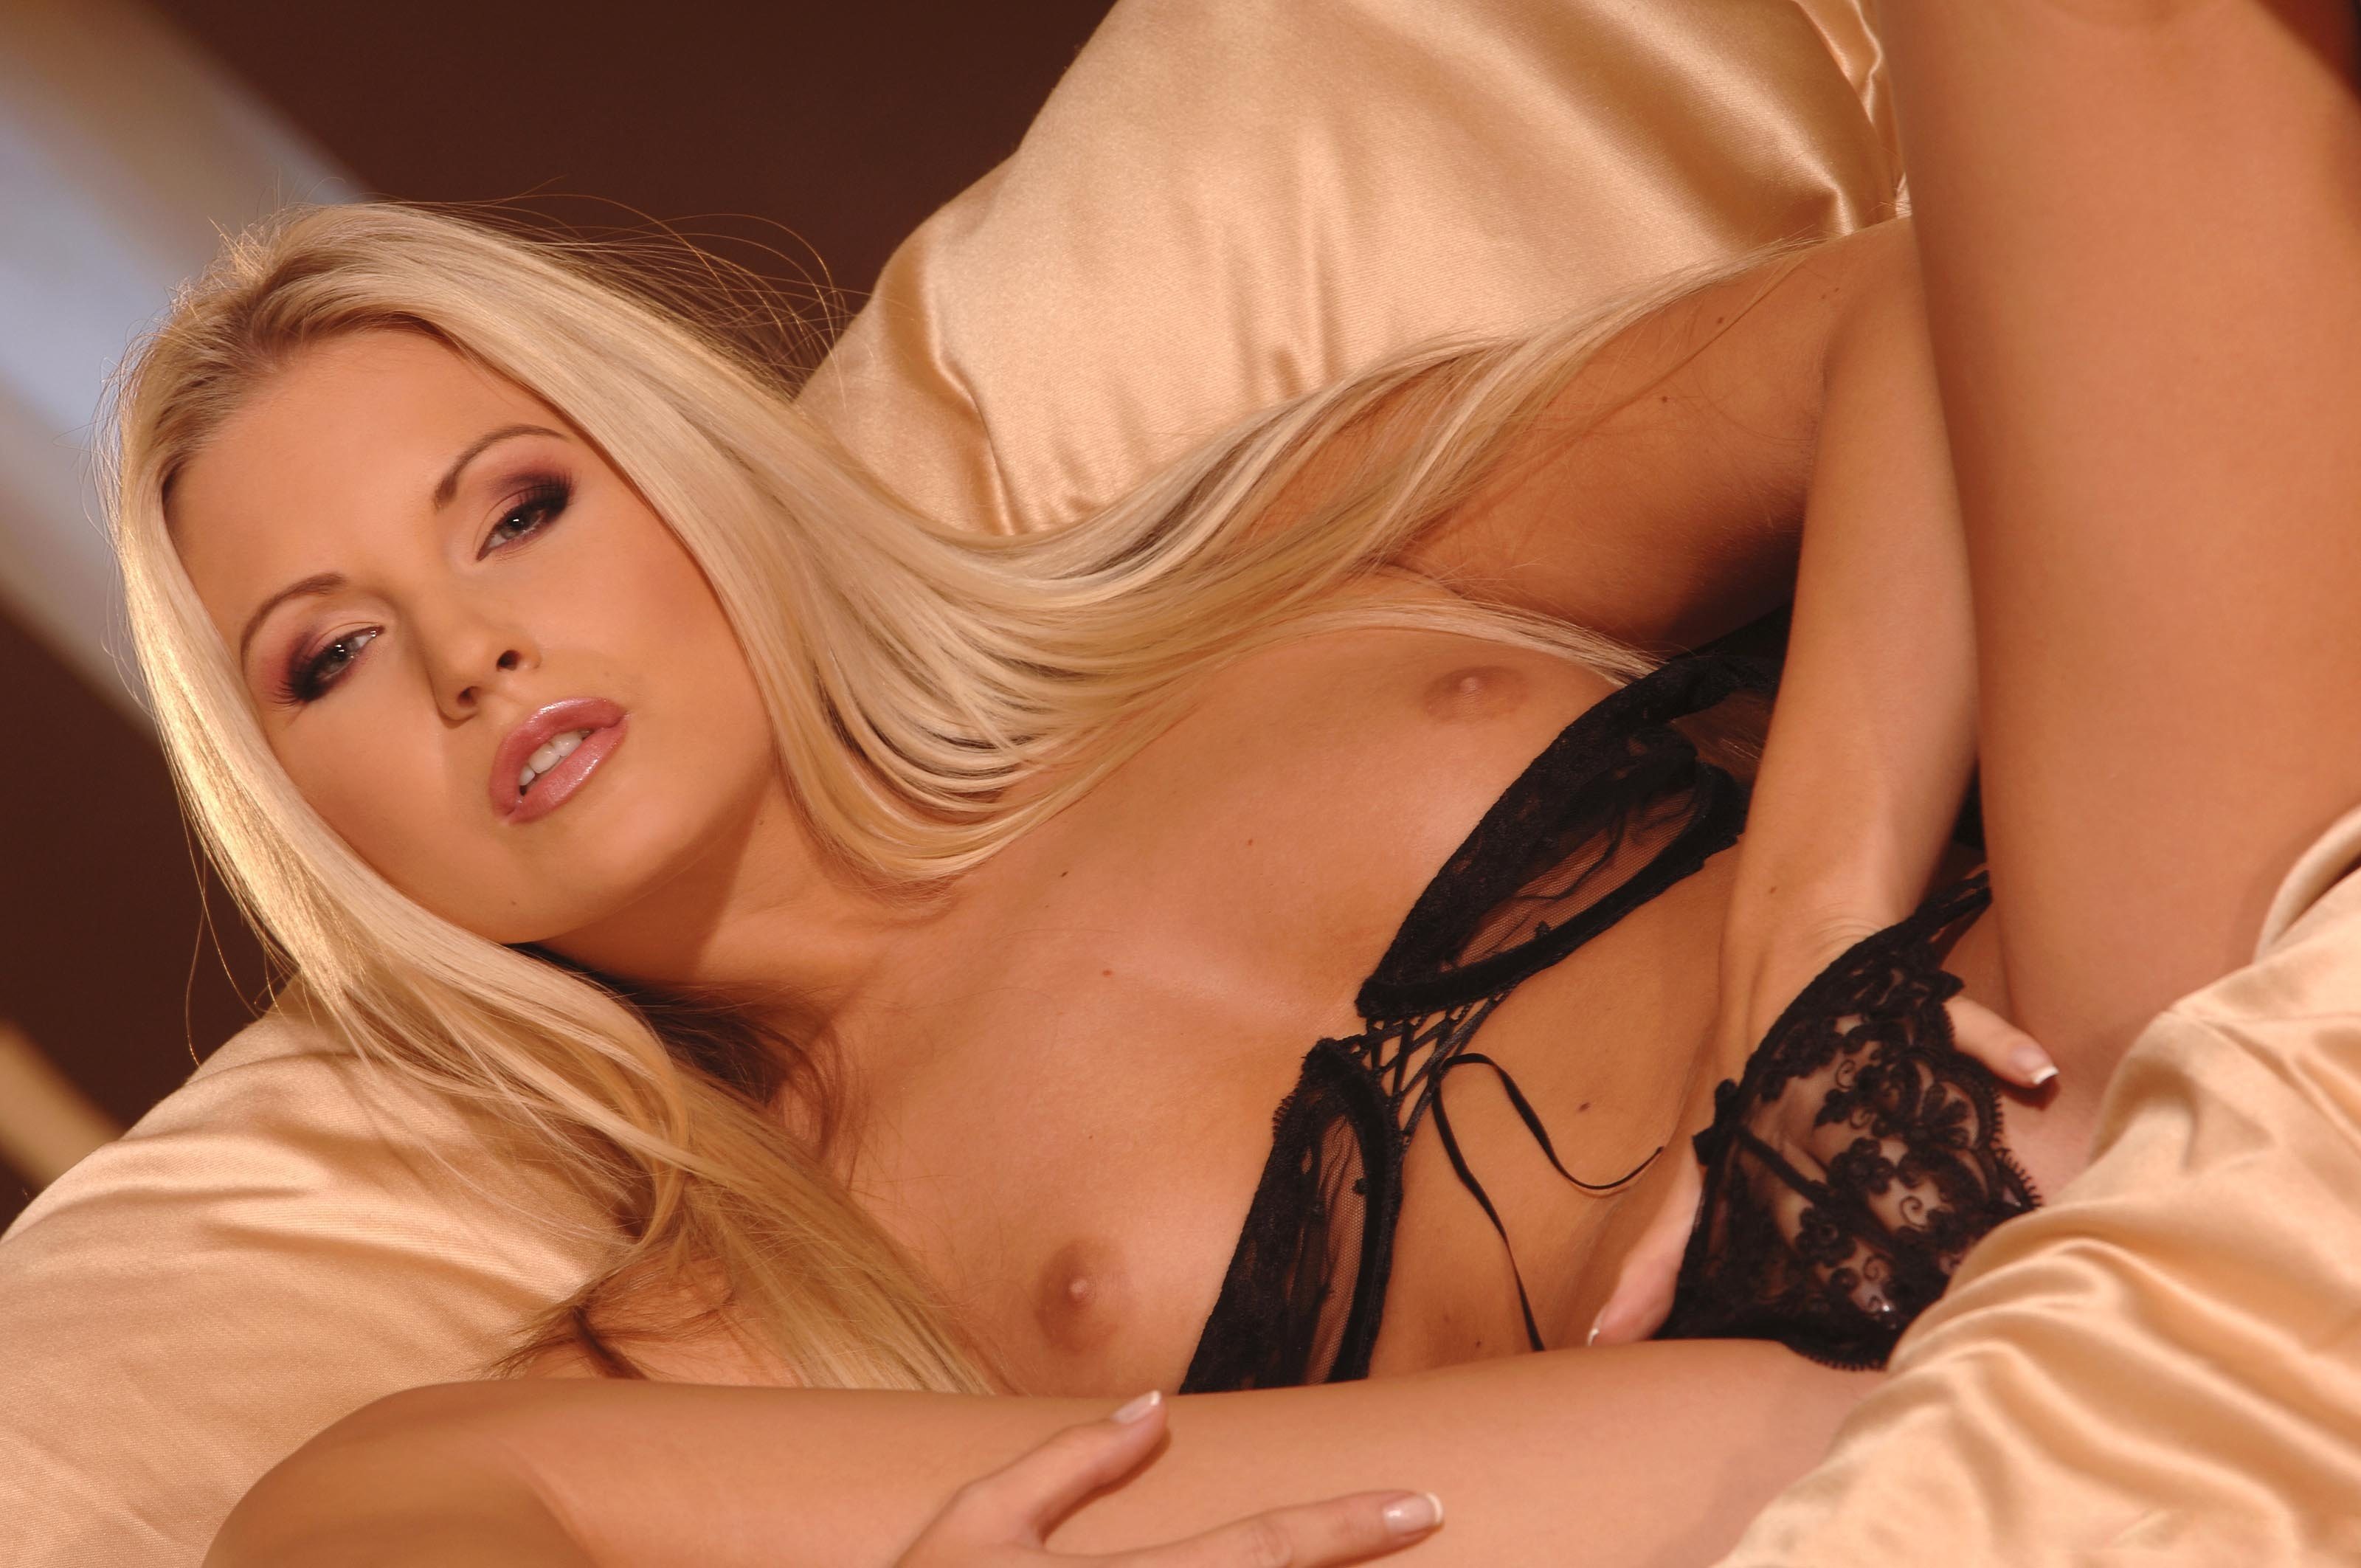 Can blonde wearing lingerie solo interesting. Prompt